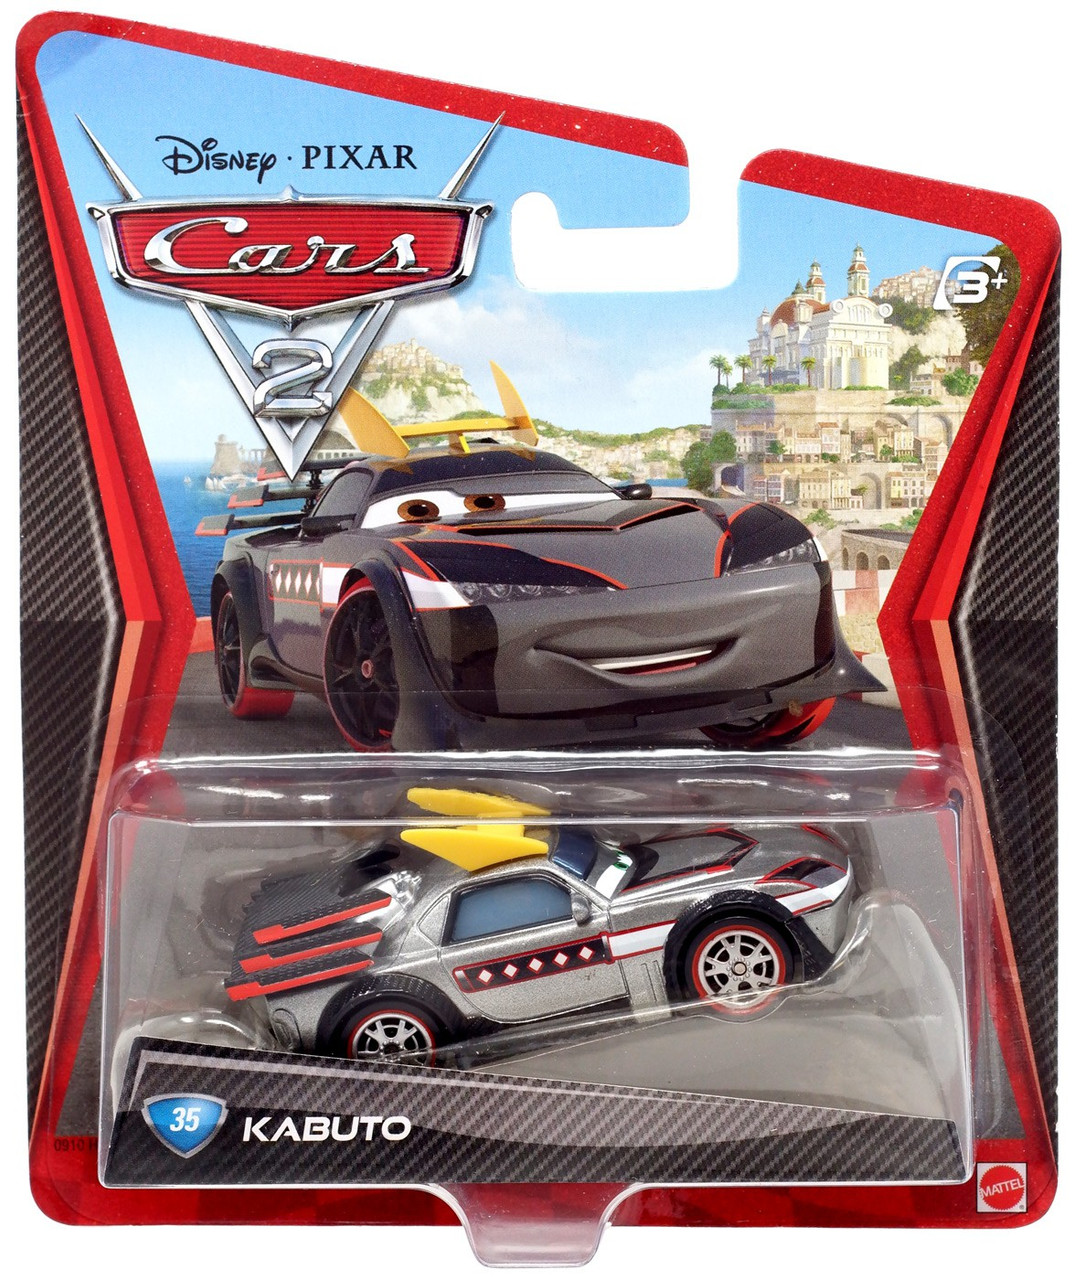 Disney Cars Cars 2 Main Series Kabuto Diecast Car